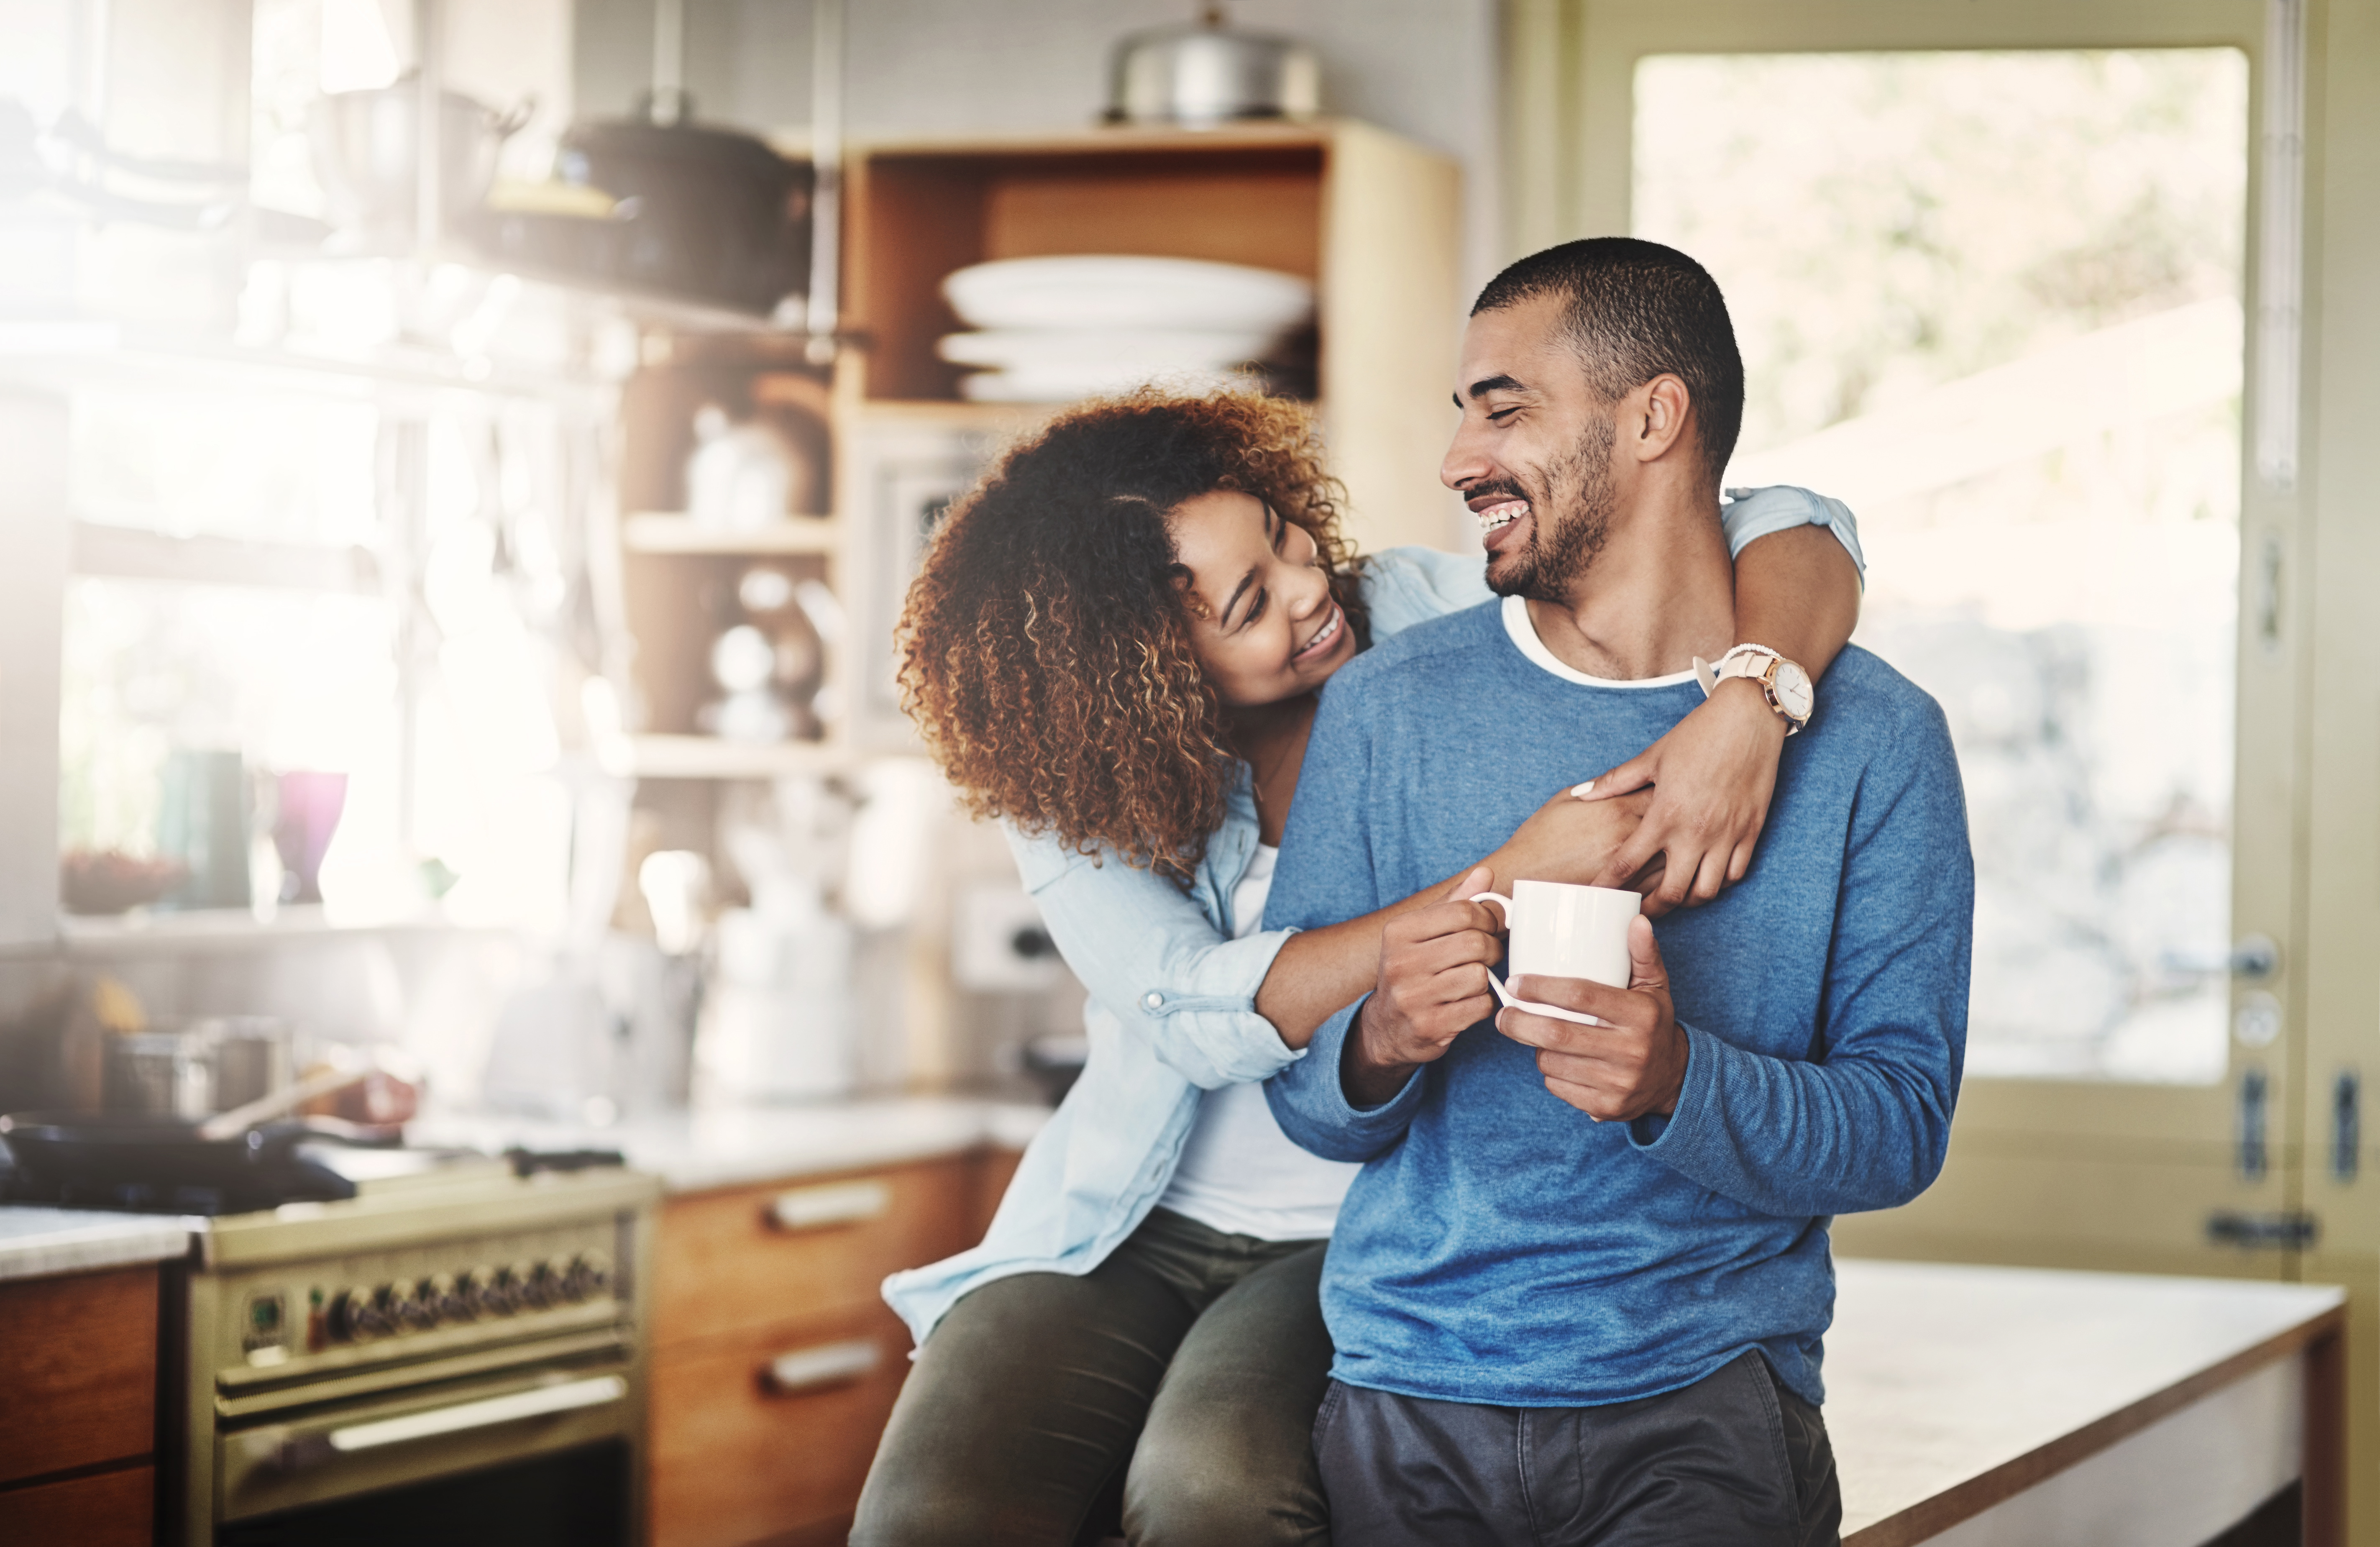 couple in kitchen looking happy